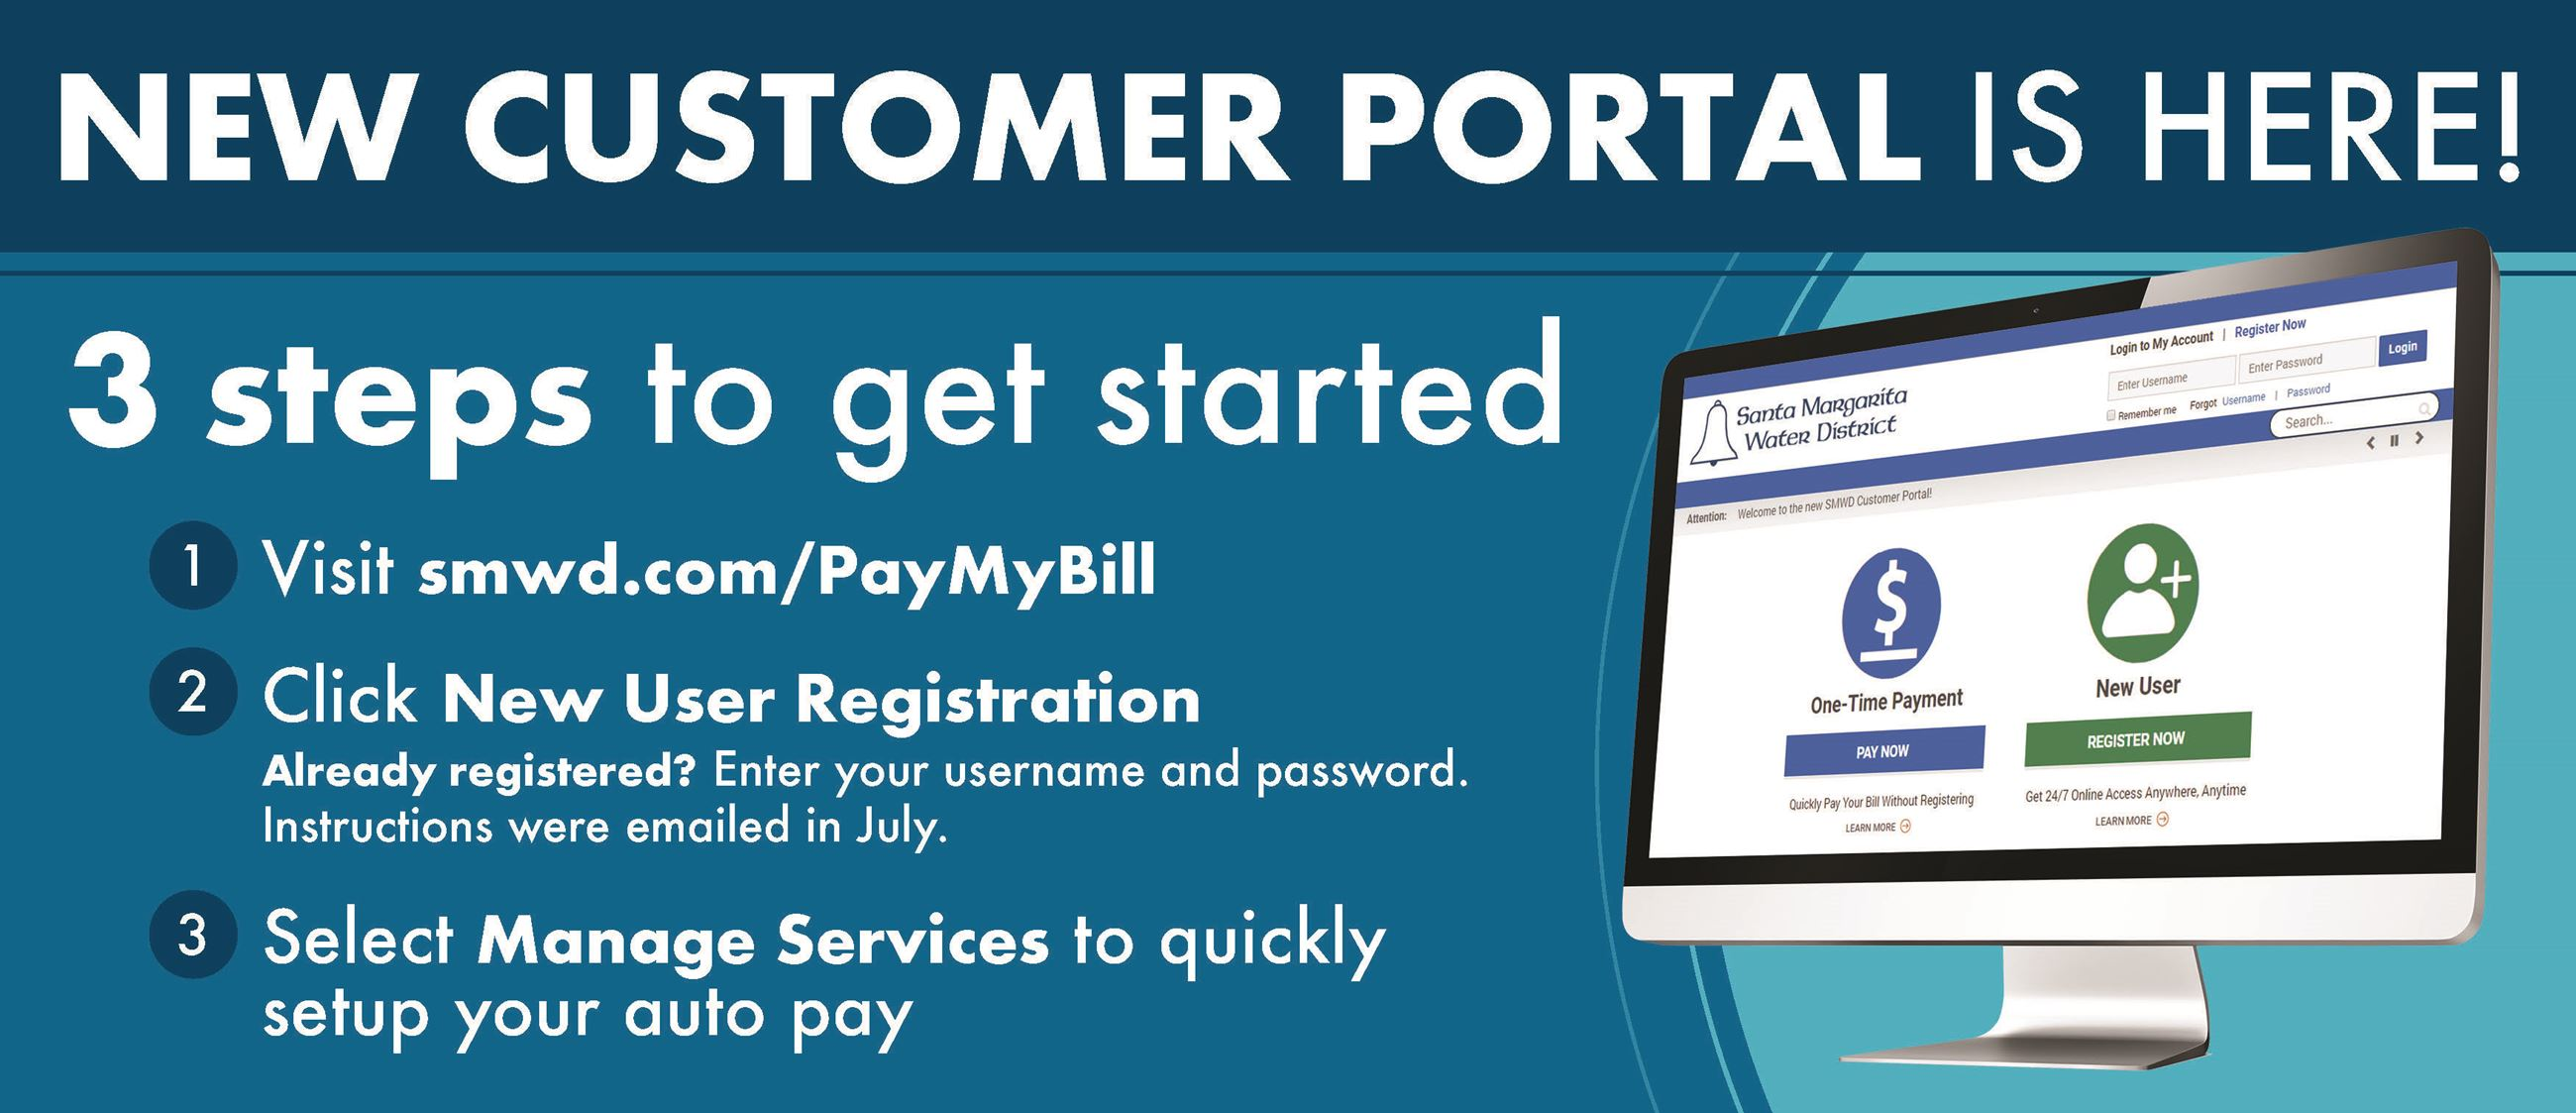 New Customer Portal Bill InsertFINAL_Page_1